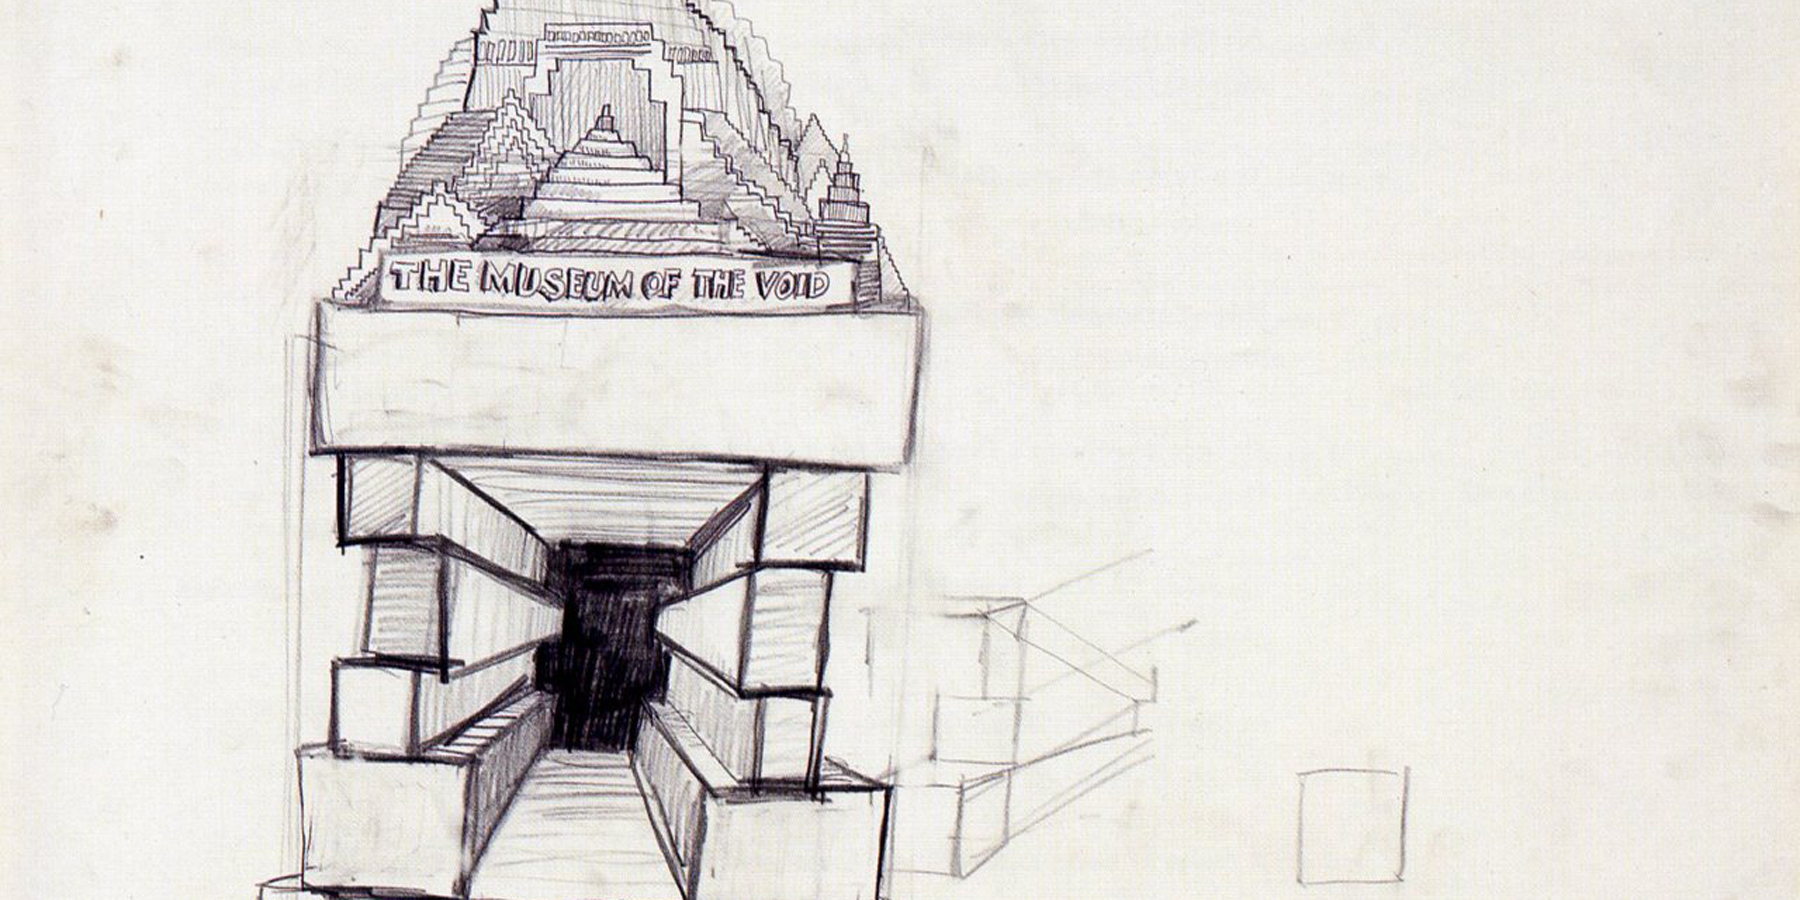 Proposal for a Museum